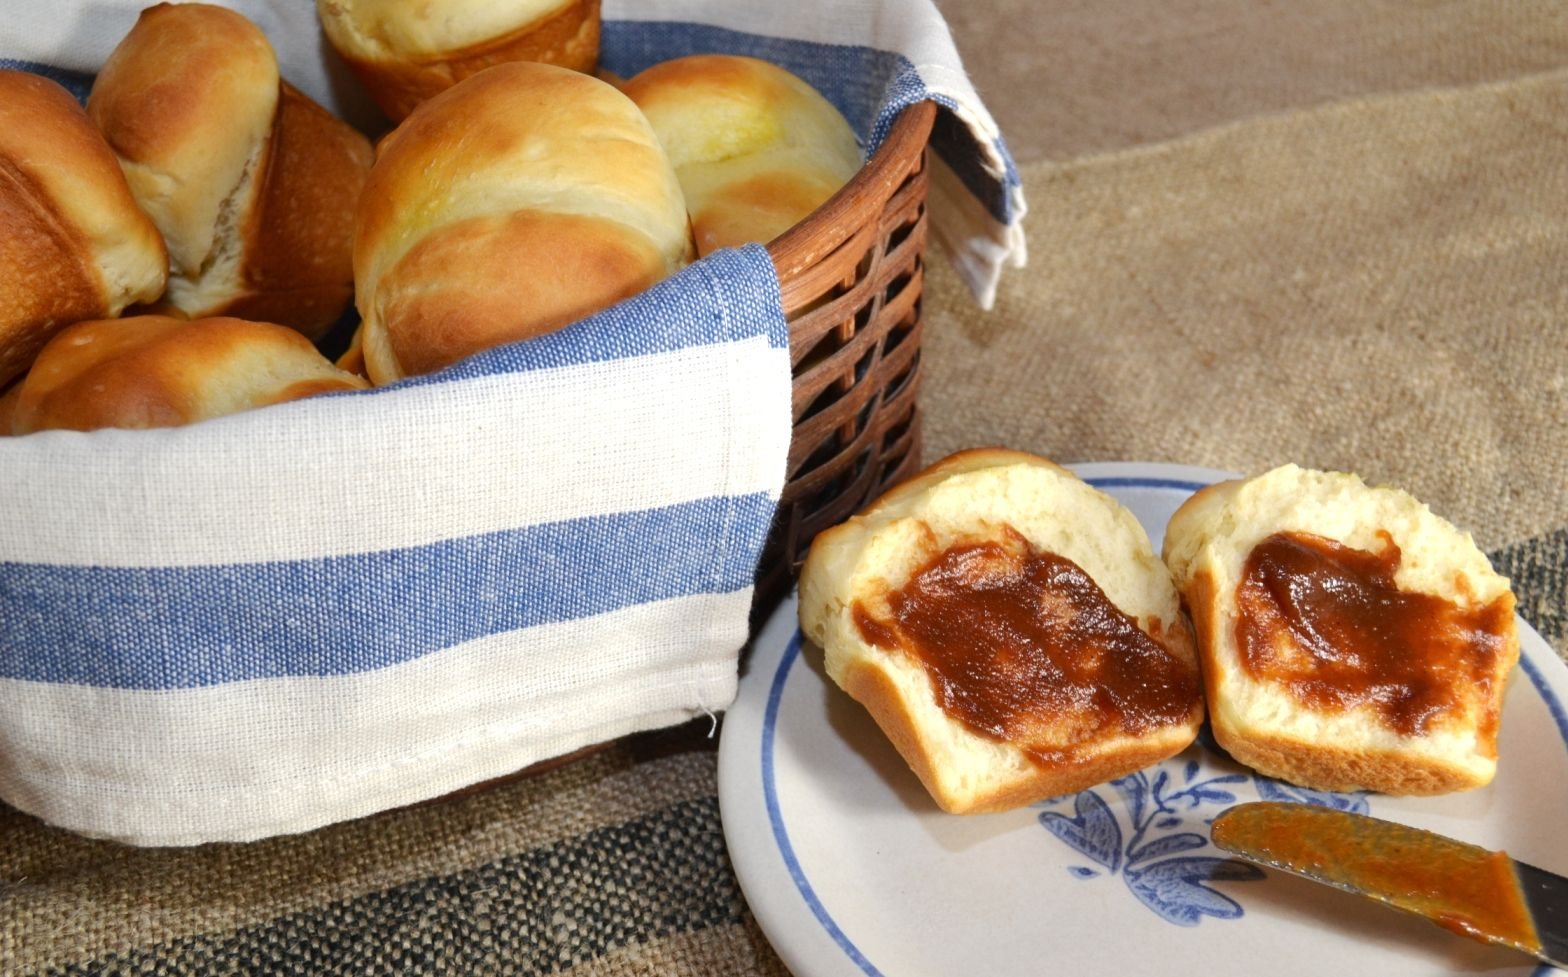 These yeast rolls are quick, soft, and delicious.  Take care when adding the salt, as it's added to the dough after it's been kneaded.  Enjoy!